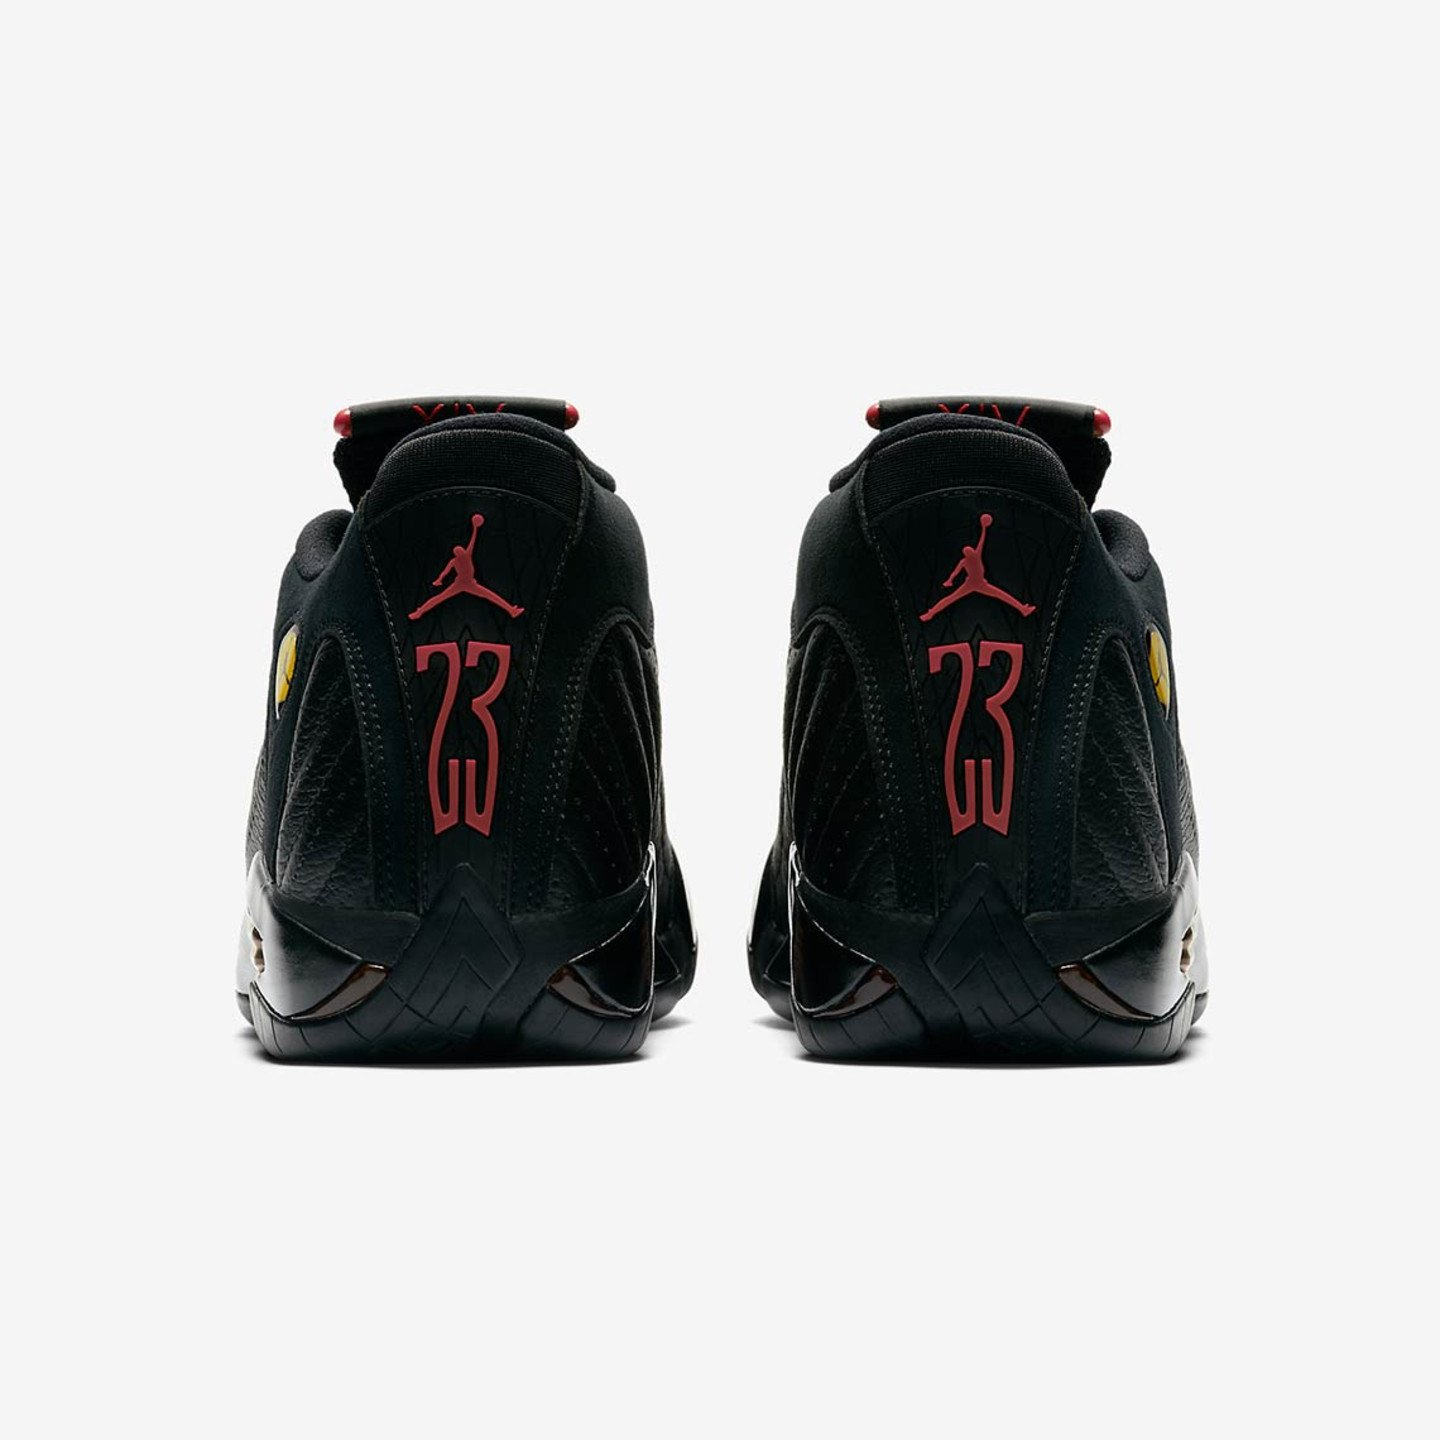 Jordan Air Jordan 14 Retro 'Last Shot' Black / Varsity Red 487471-003